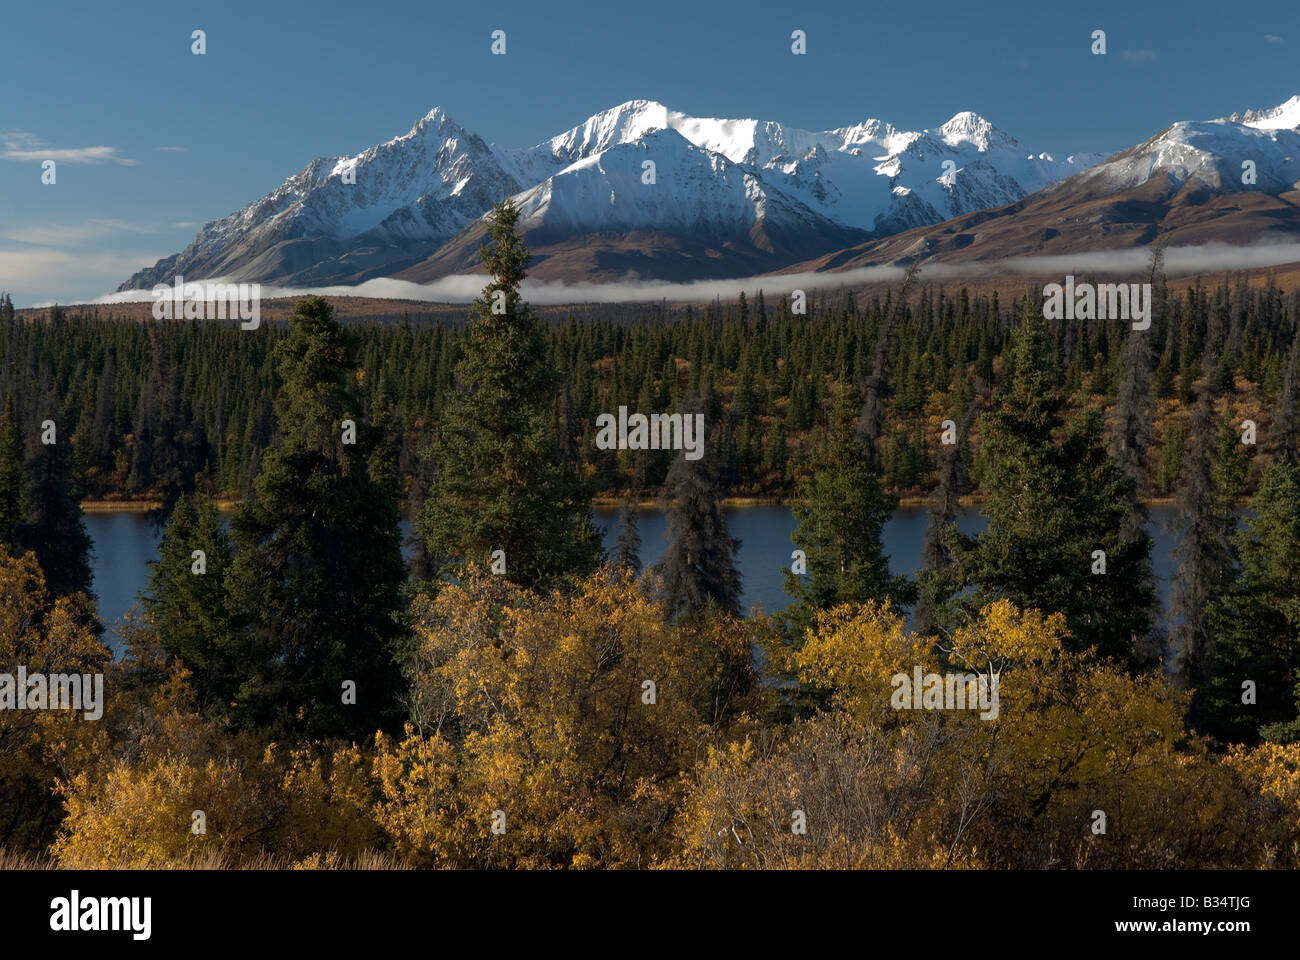 Mountains Nature The Yukon Territory Unspoiled Yukon High Resolution Stock Photography And Images Alamy